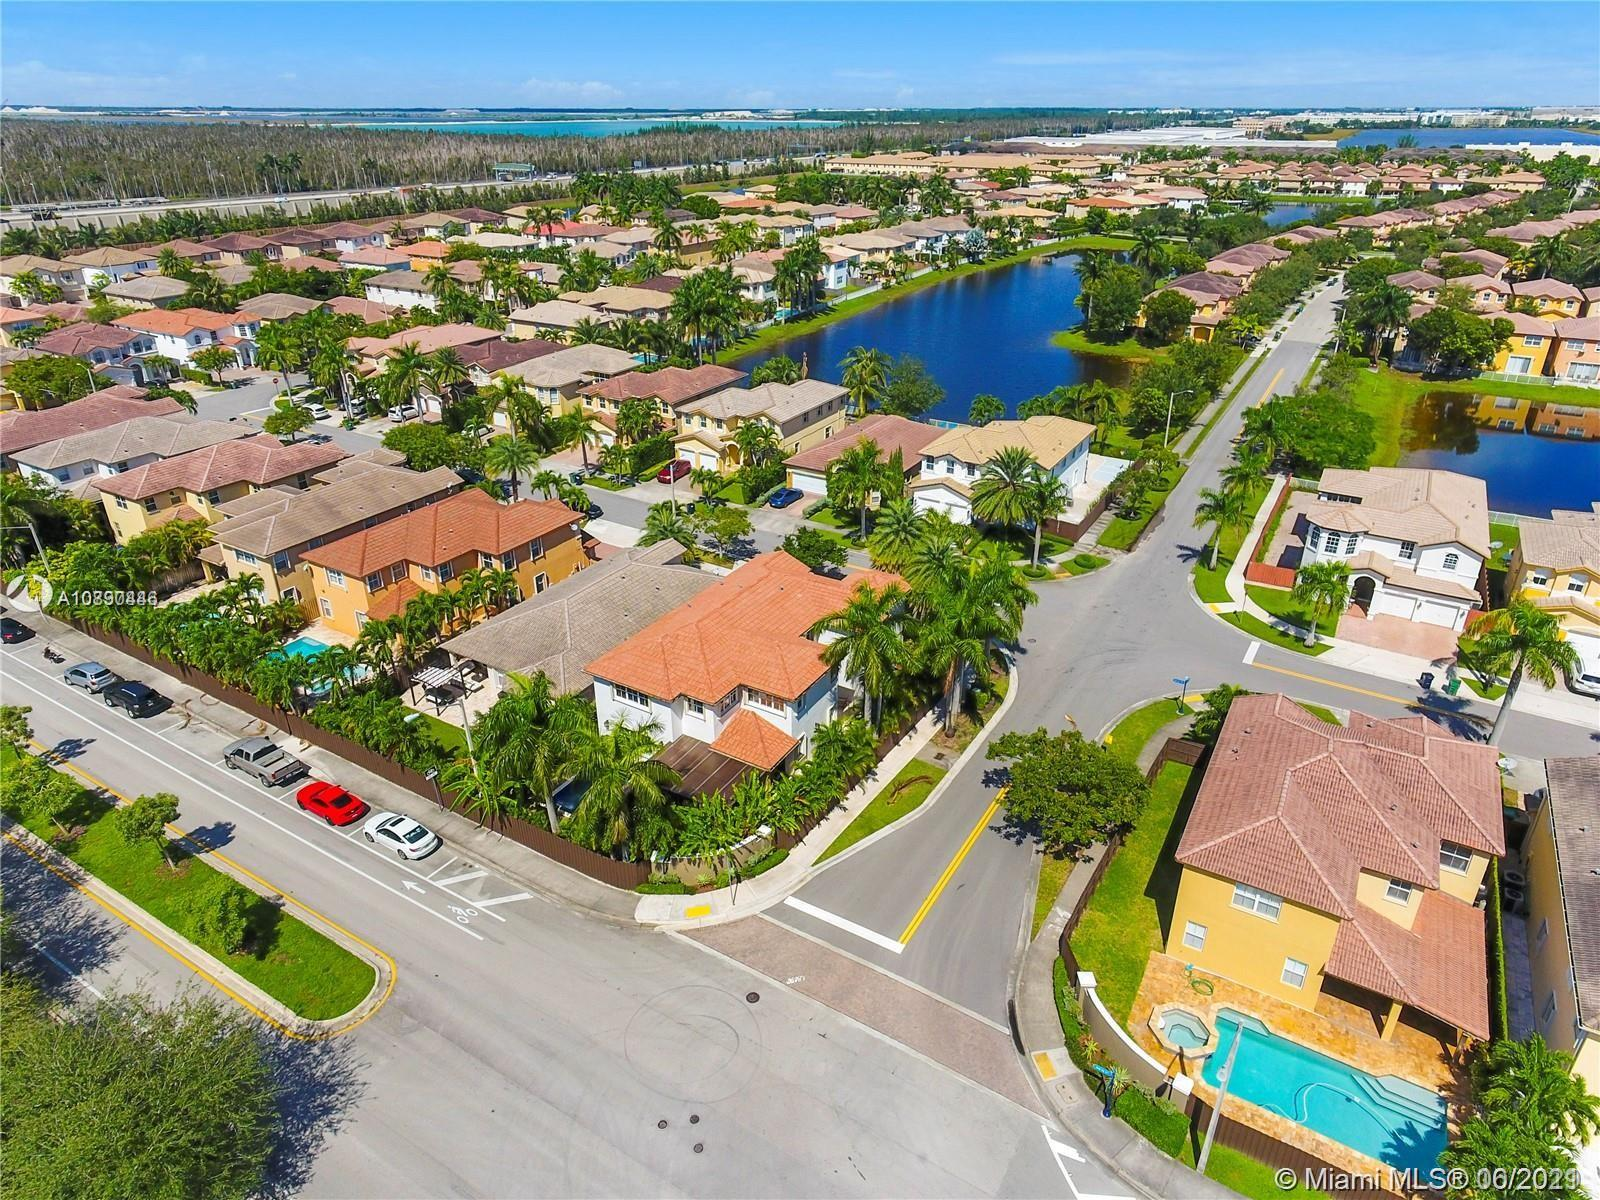 Photo - 11460 NW 82nd Ter, Doral FL 33178